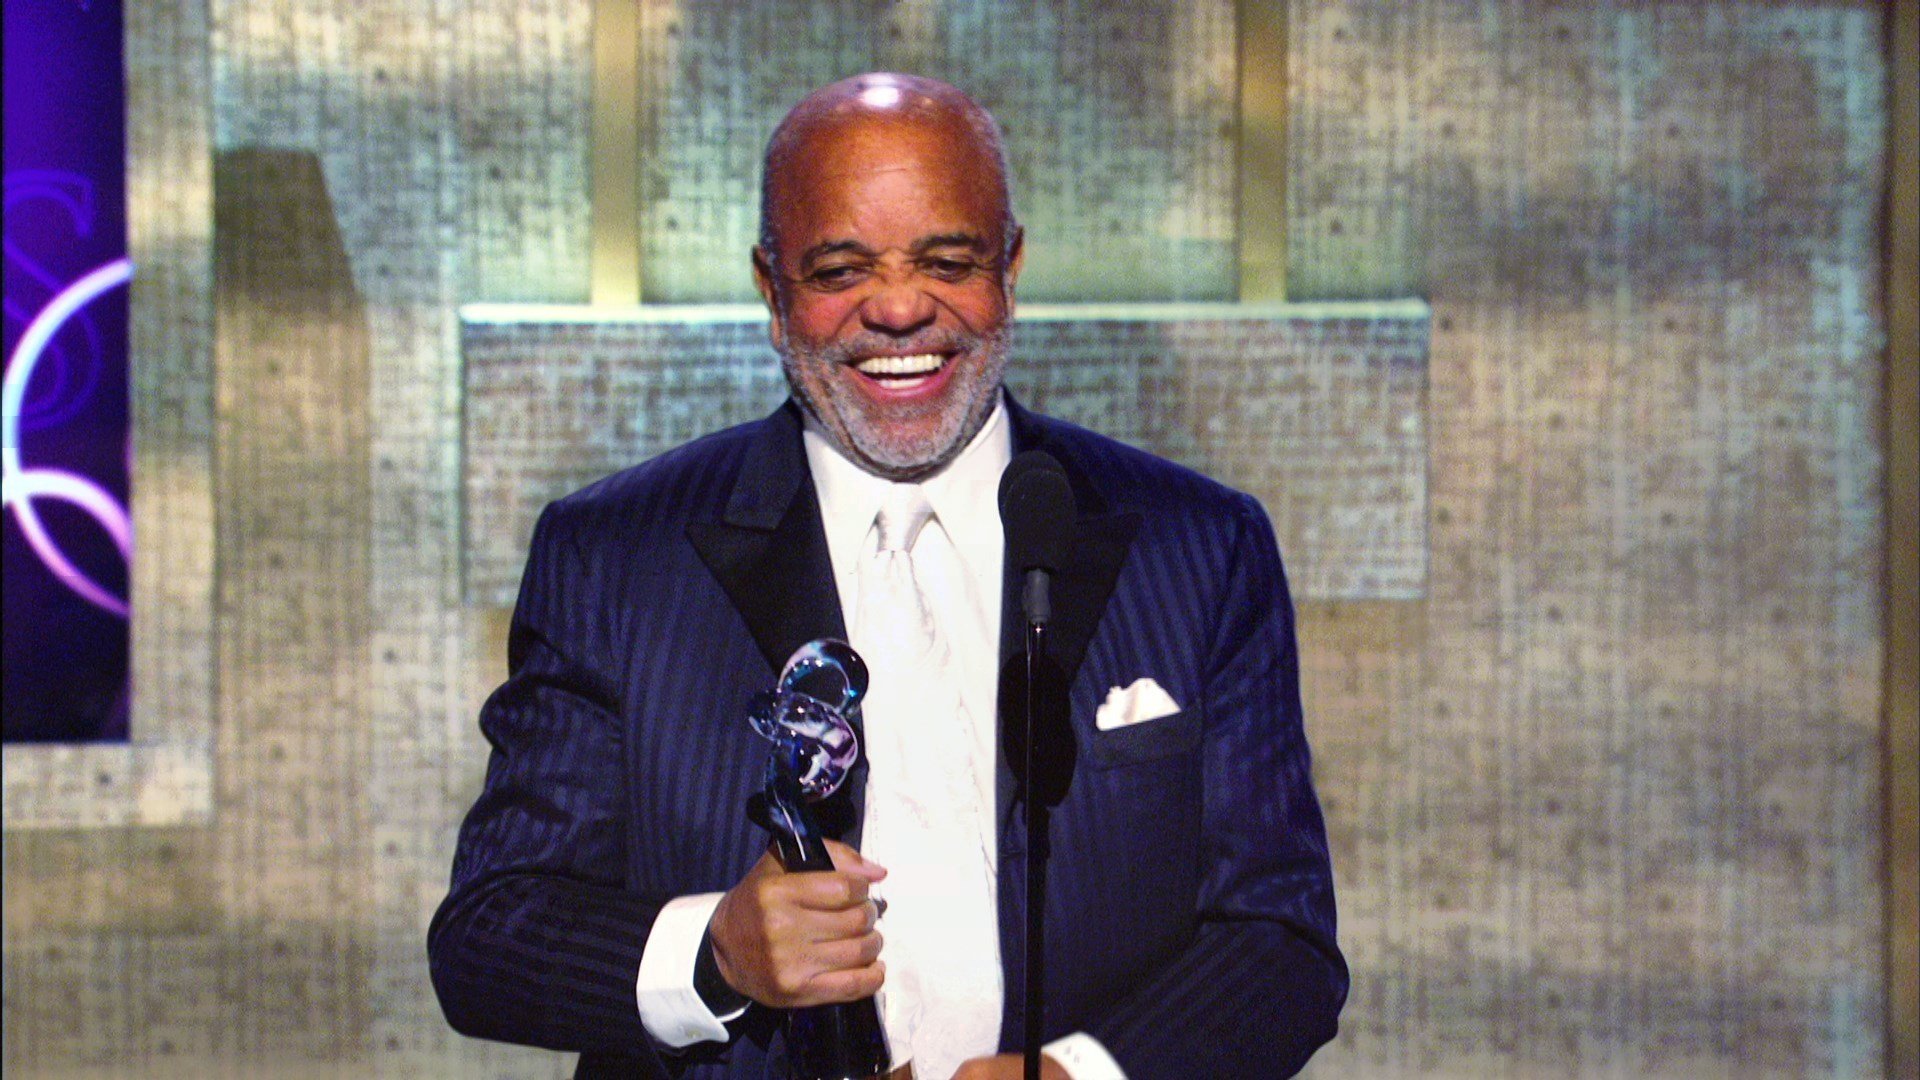 Diana Ross daughter s father is Berry Gordy, the founder of Motown Berry gordy kids photos